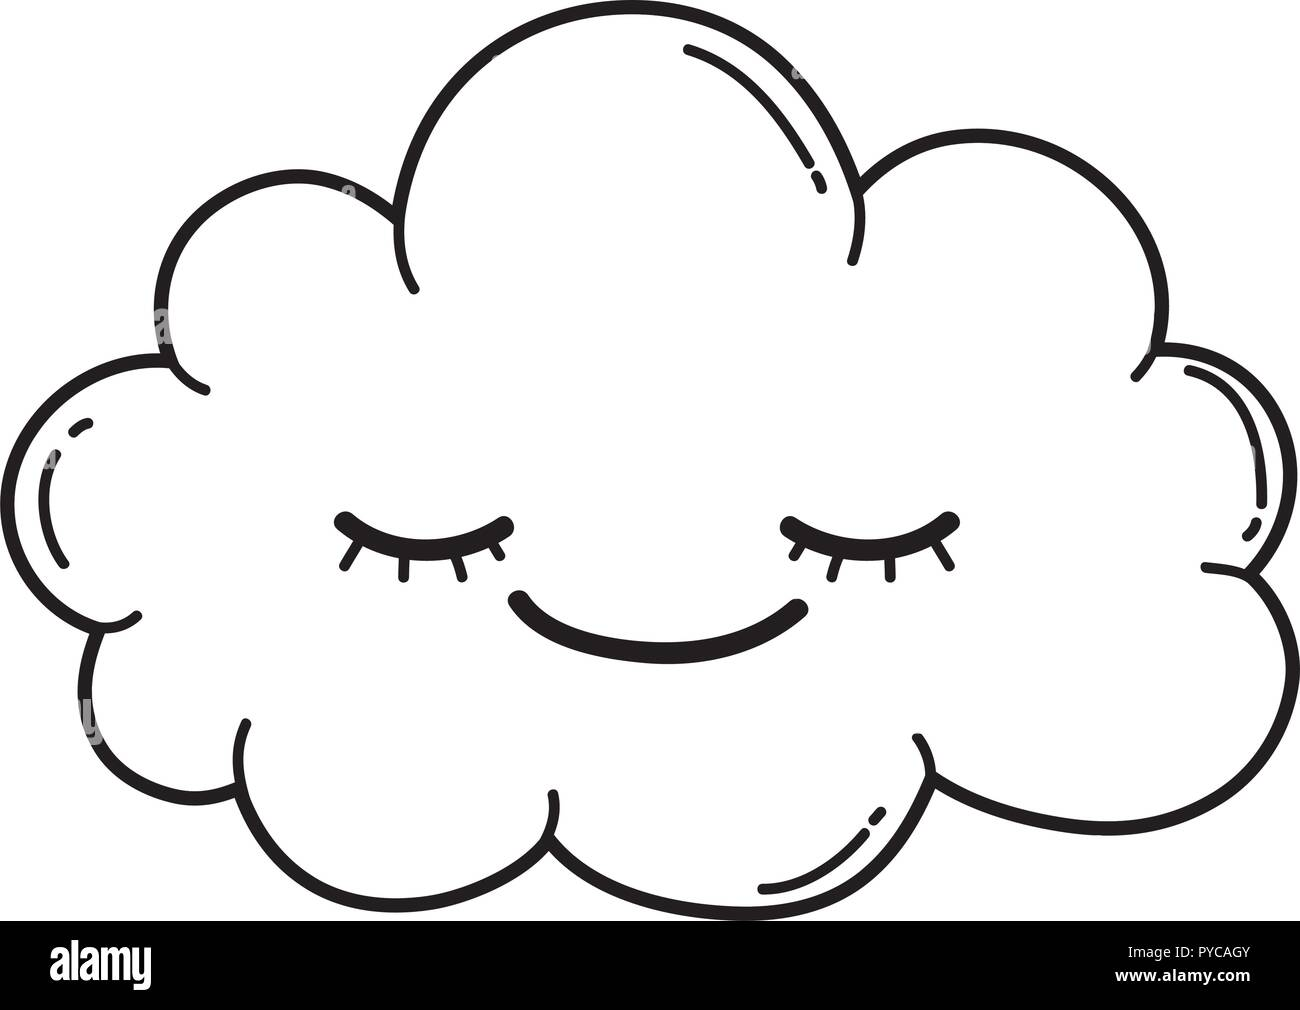 Cute Cloud Cartoon In Black And White Stock Vector Image Art Alamy You found 789 cloud cartoon video effects & stock videos from $7. https www alamy com cute cloud cartoon in black and white image223391867 html